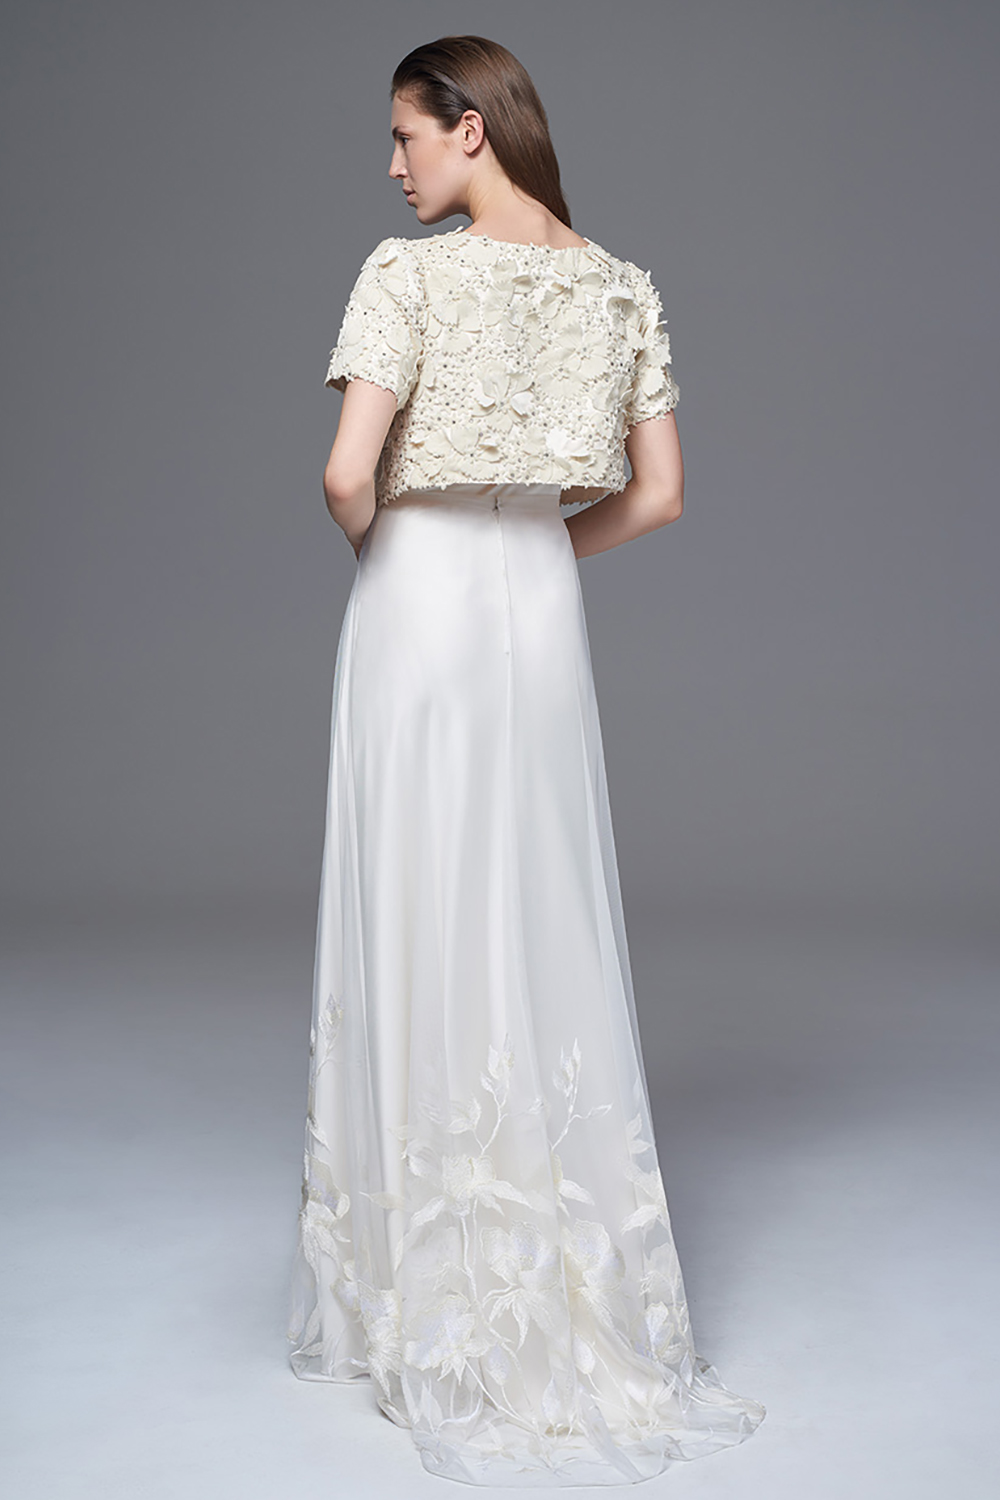 THE ISOBEL JACKET OF HAND CUT VELVET AND 3D FLOWERS WORN WITH THE SHEER TULLE AND EMBROIDERED LILY SKIRT AND CLASSIC IRIS SLIP. BRIDAL WEDDING DRESS BY HALFPENNY LONDON